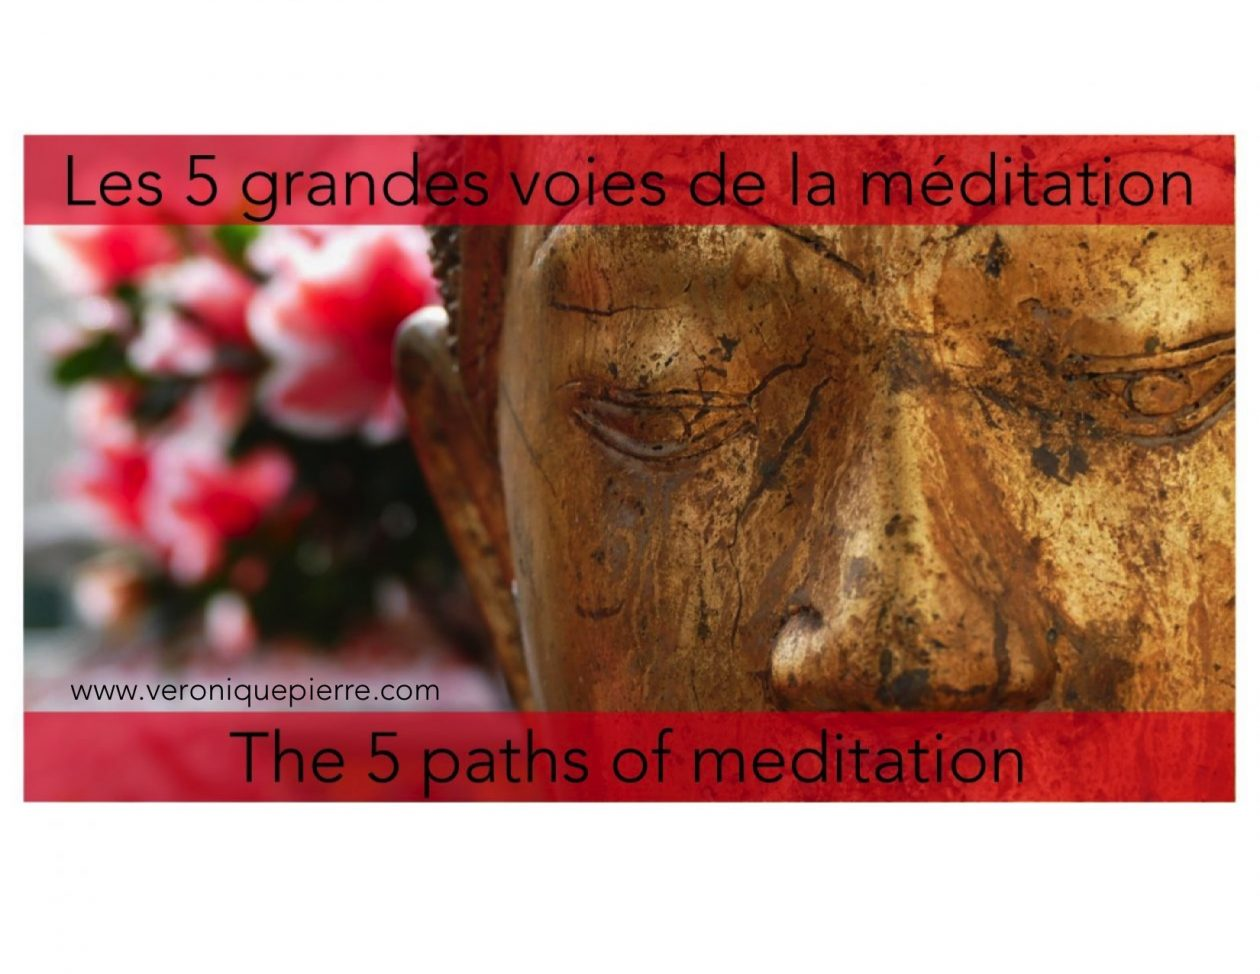 Les 5 grandes voies de la méditation / The 5 paths of meditation